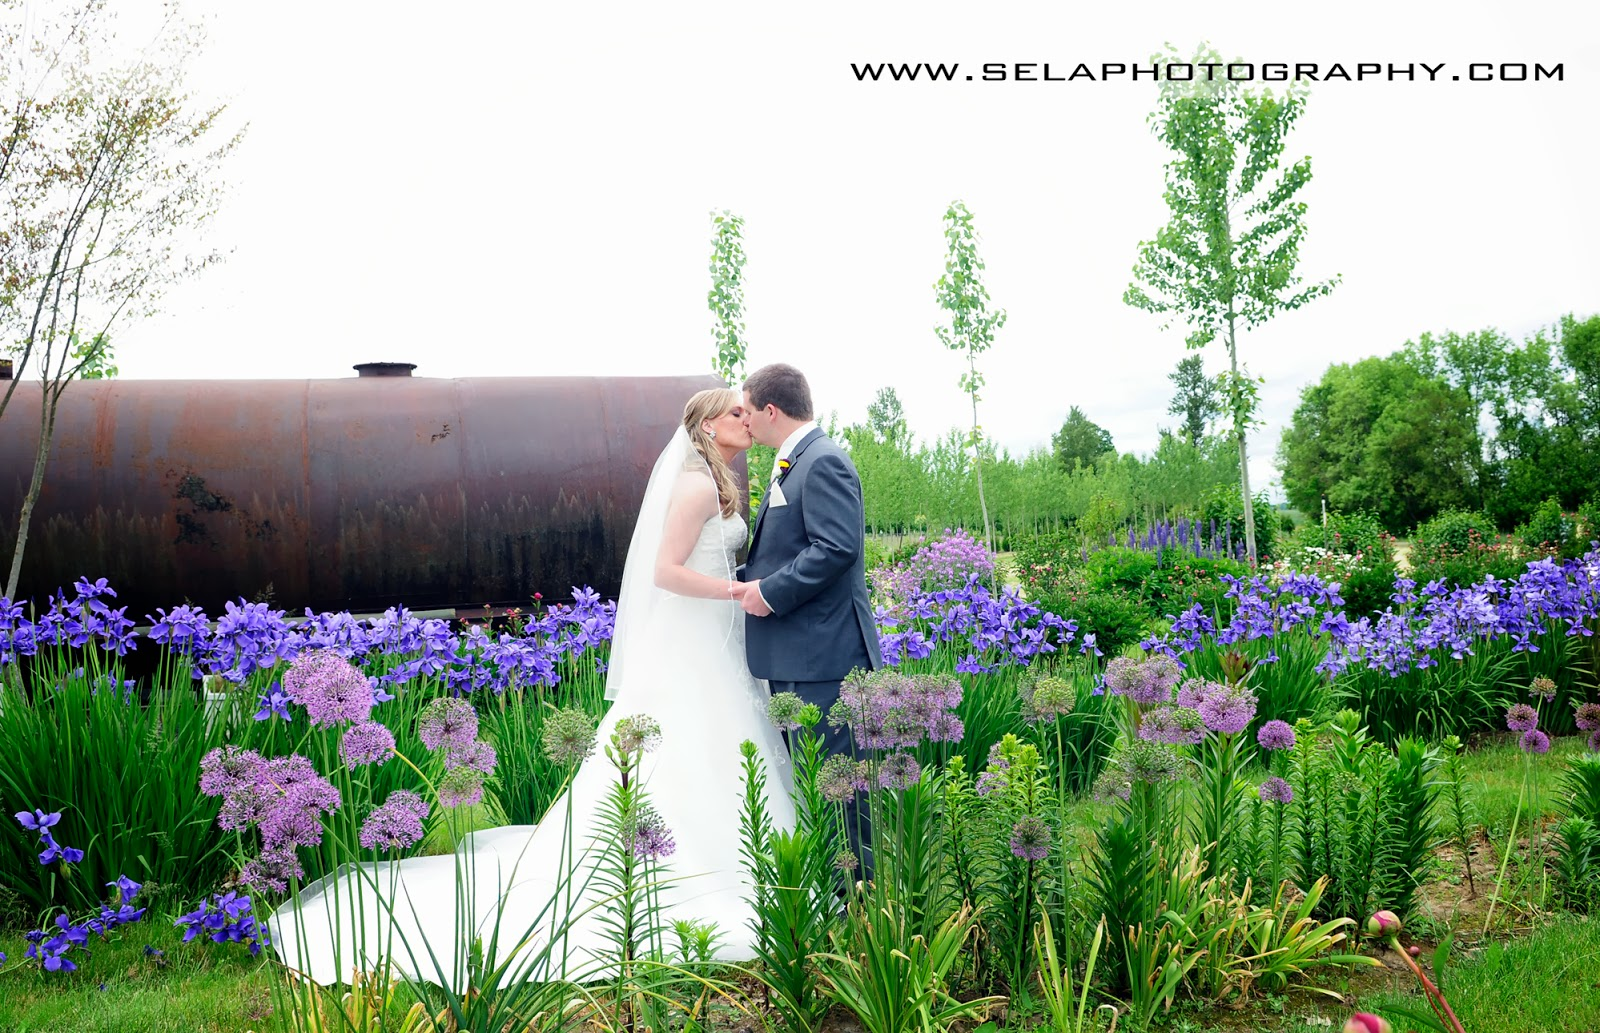 Spring weddings at green villa green villa barn gardens for Green spring gardens wedding